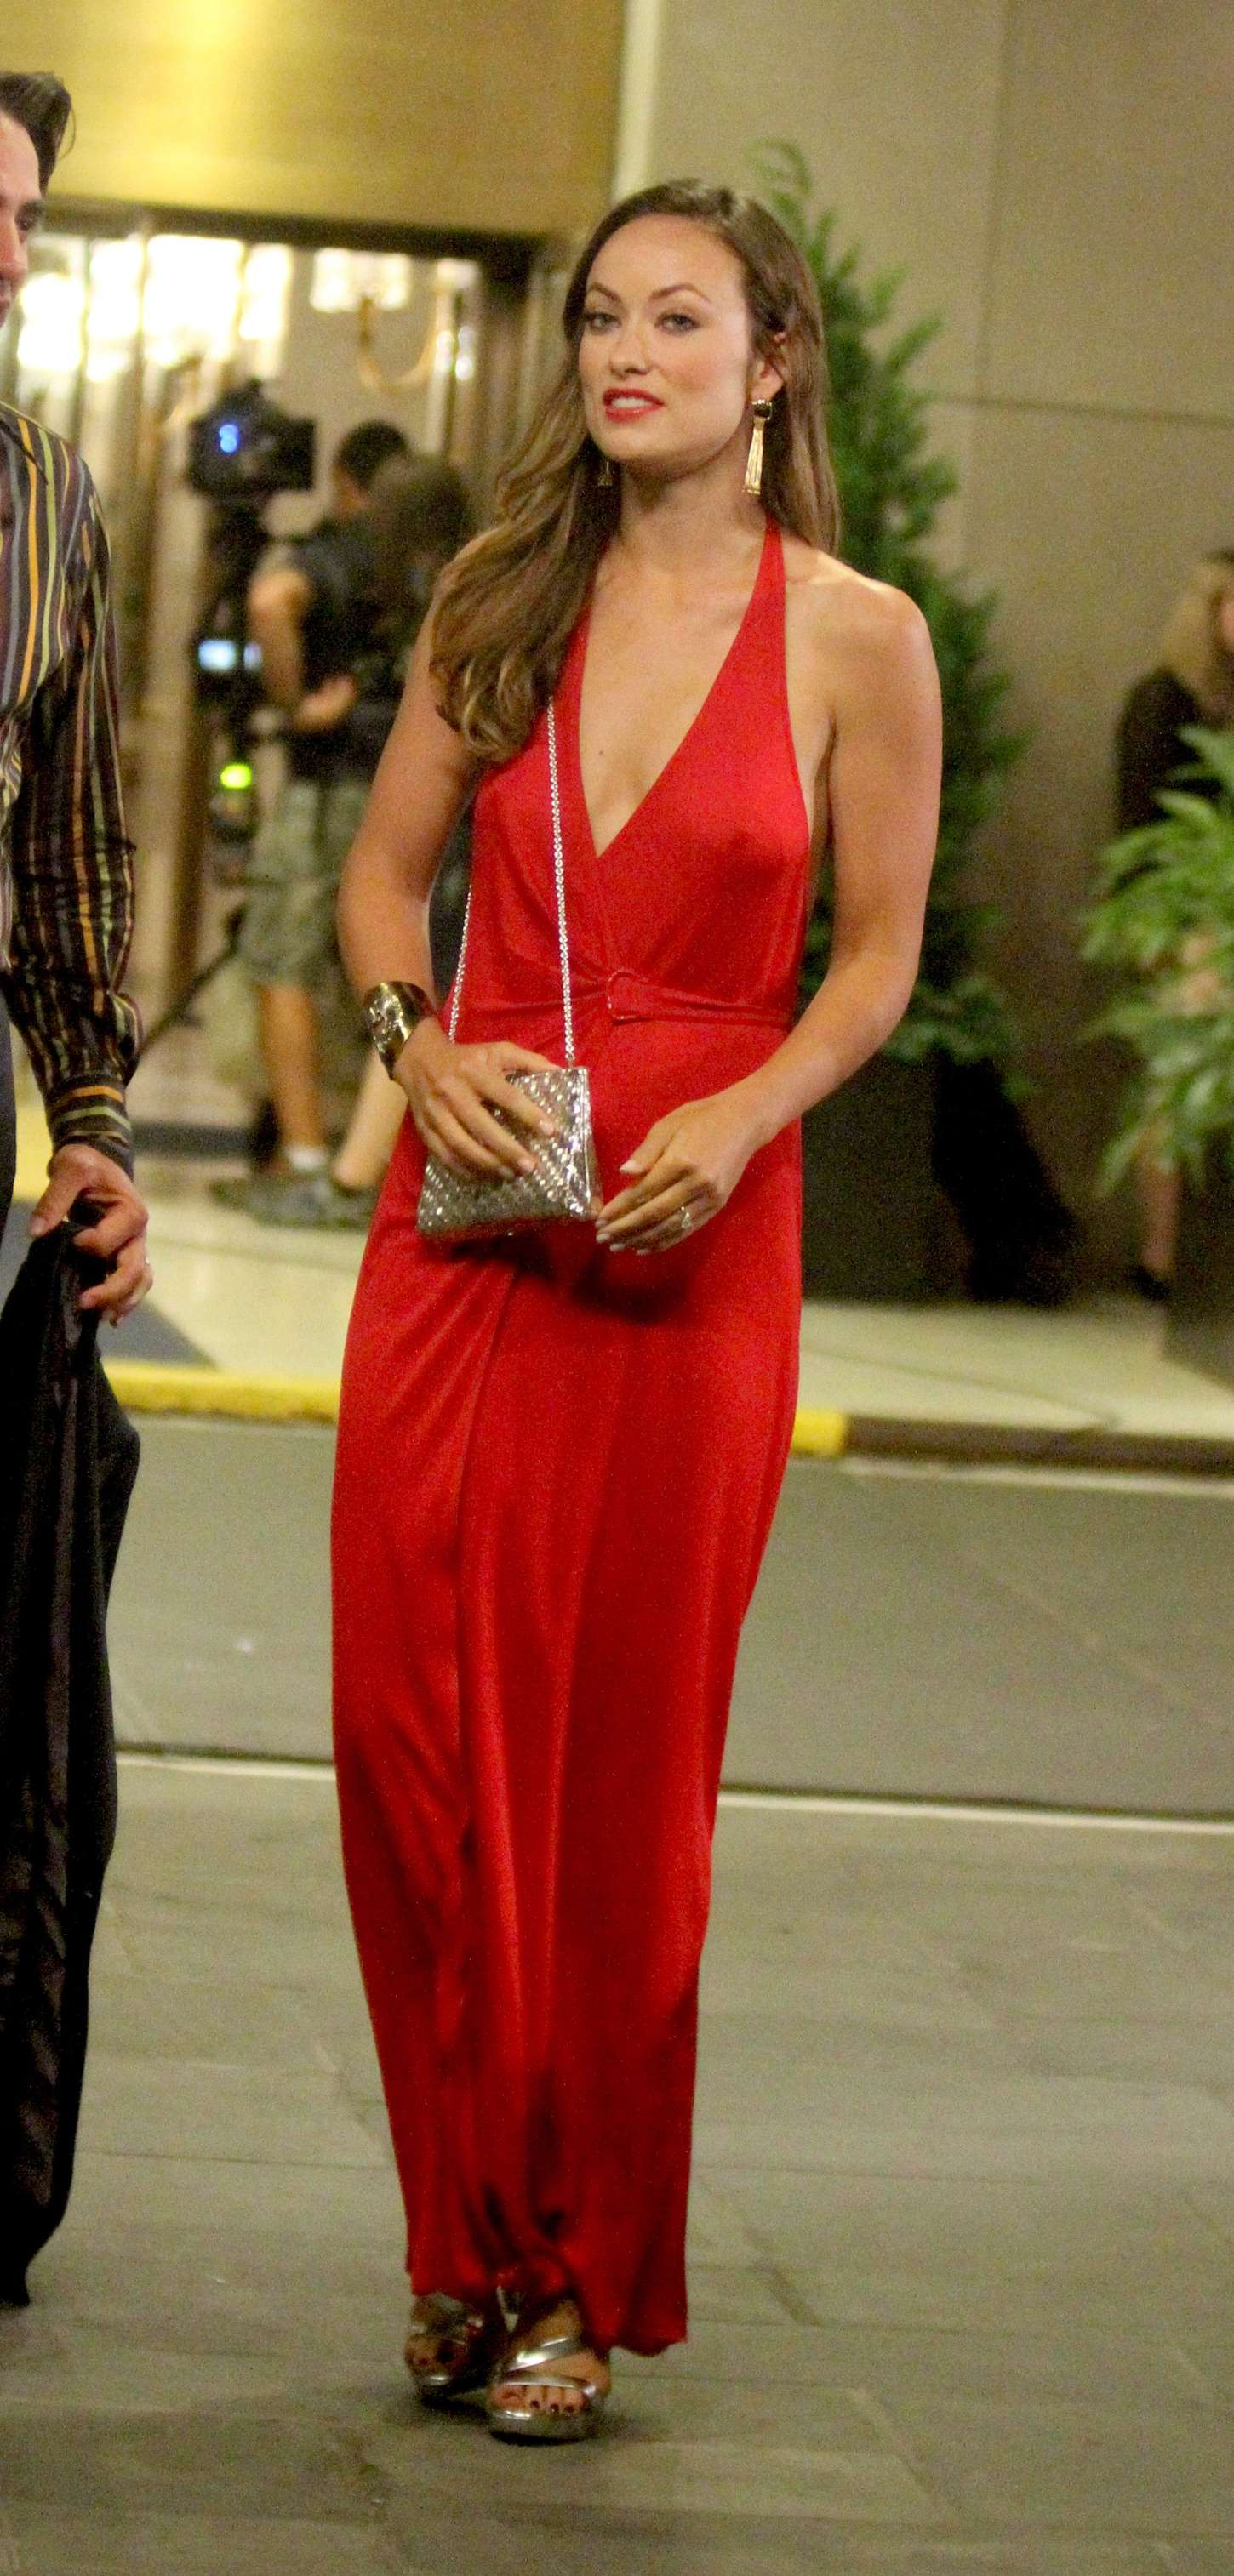 Olivia Wilde In Red Dress 15 Gotceleb